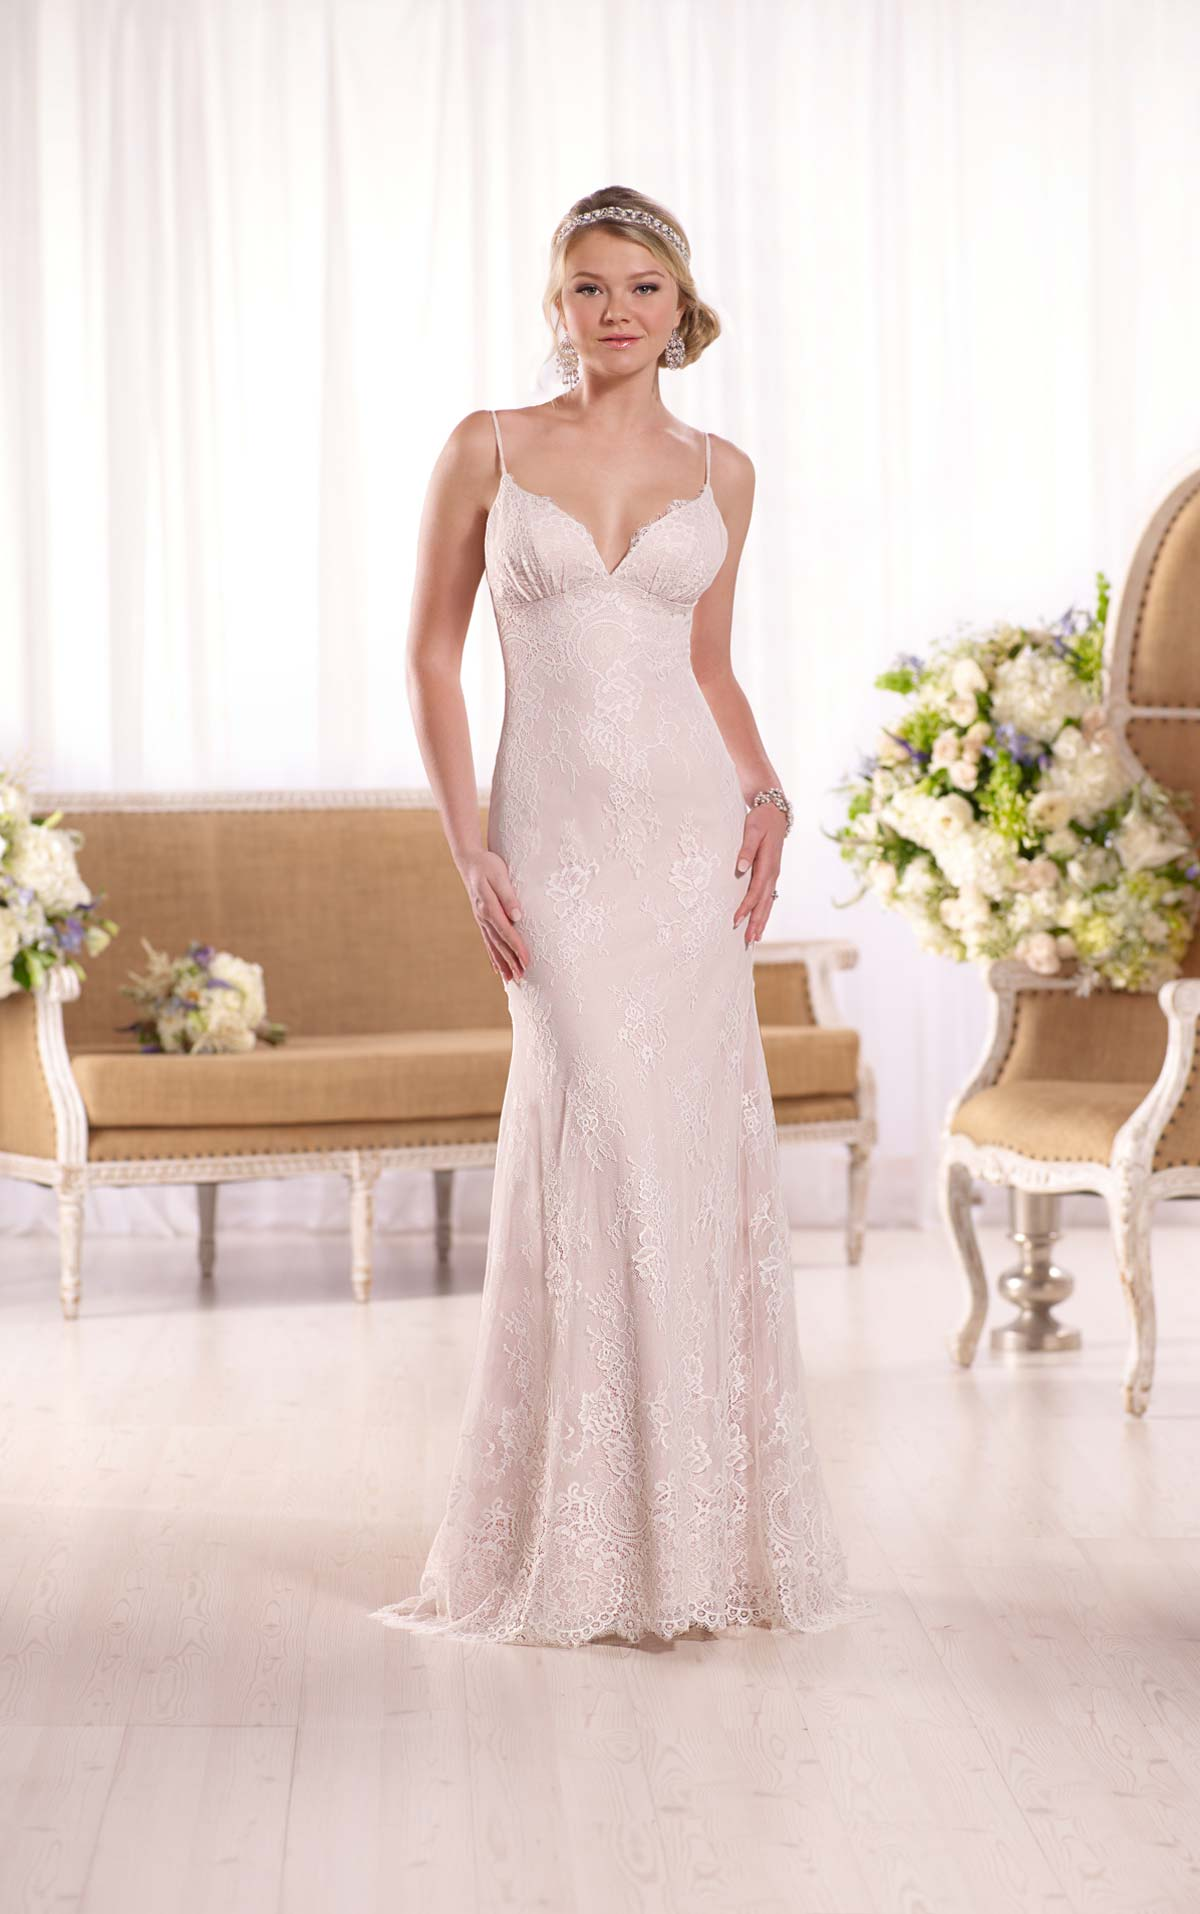 Peek at wedding gowns from essence of australia 39 s gorgeous for Essence australia wedding dresses